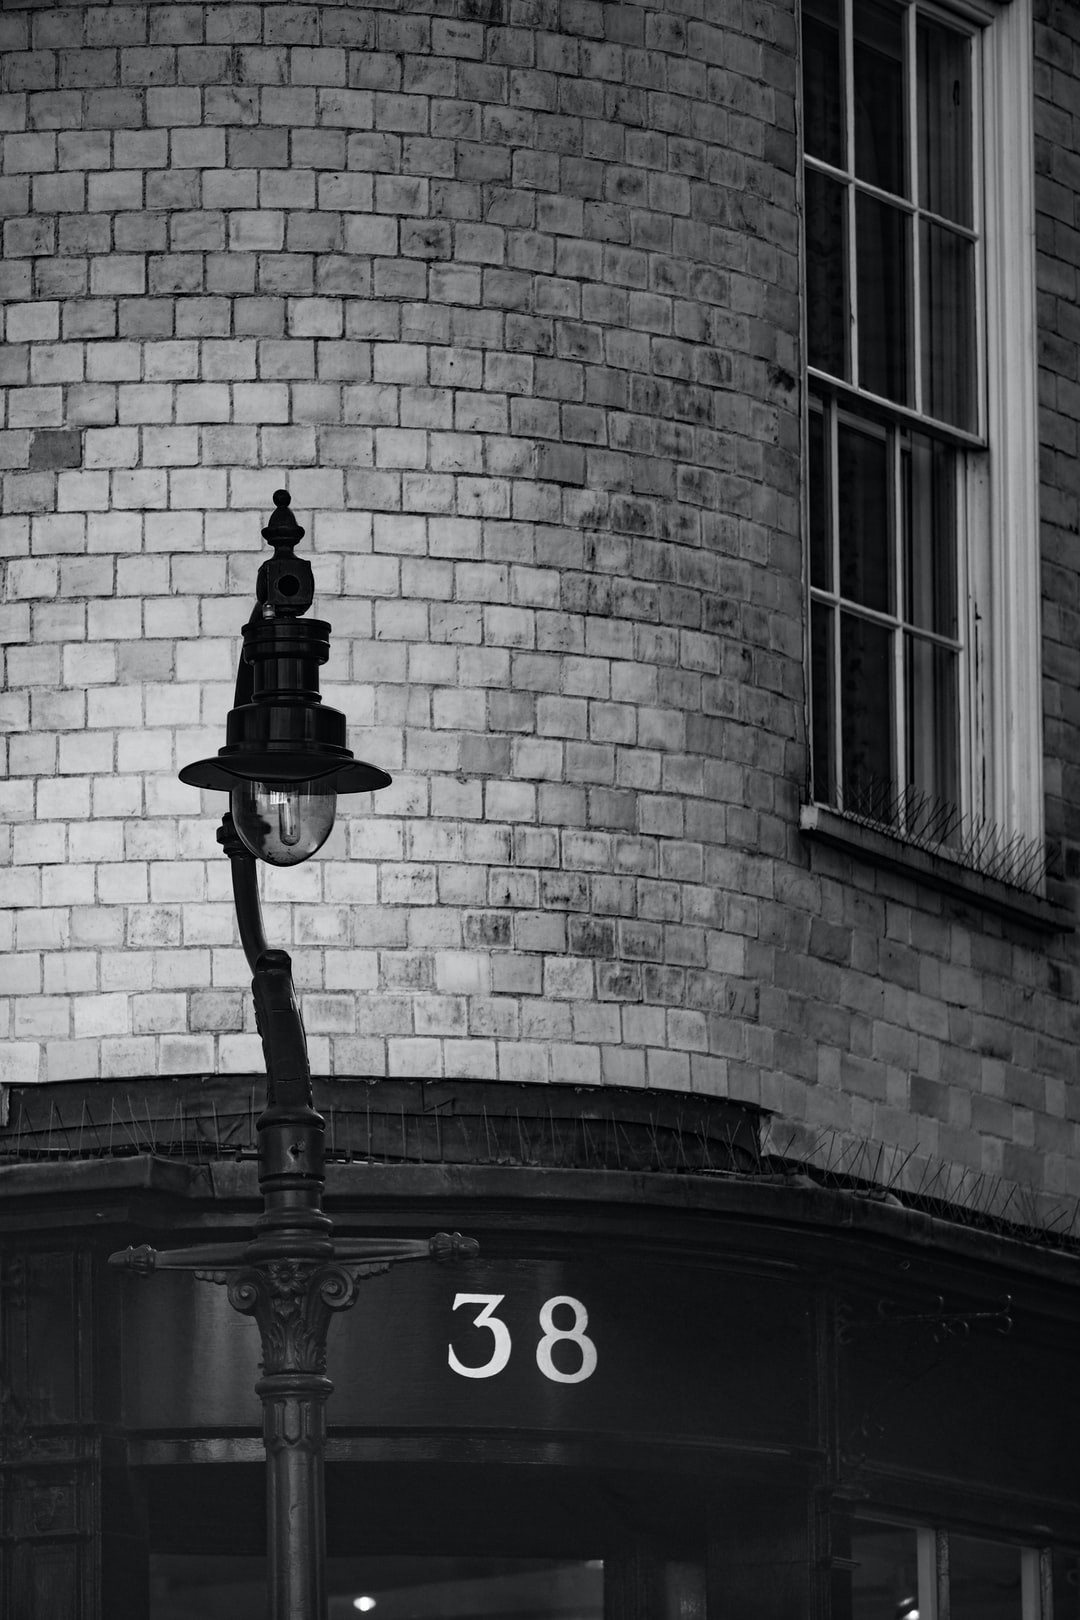 number 38 and streetlight